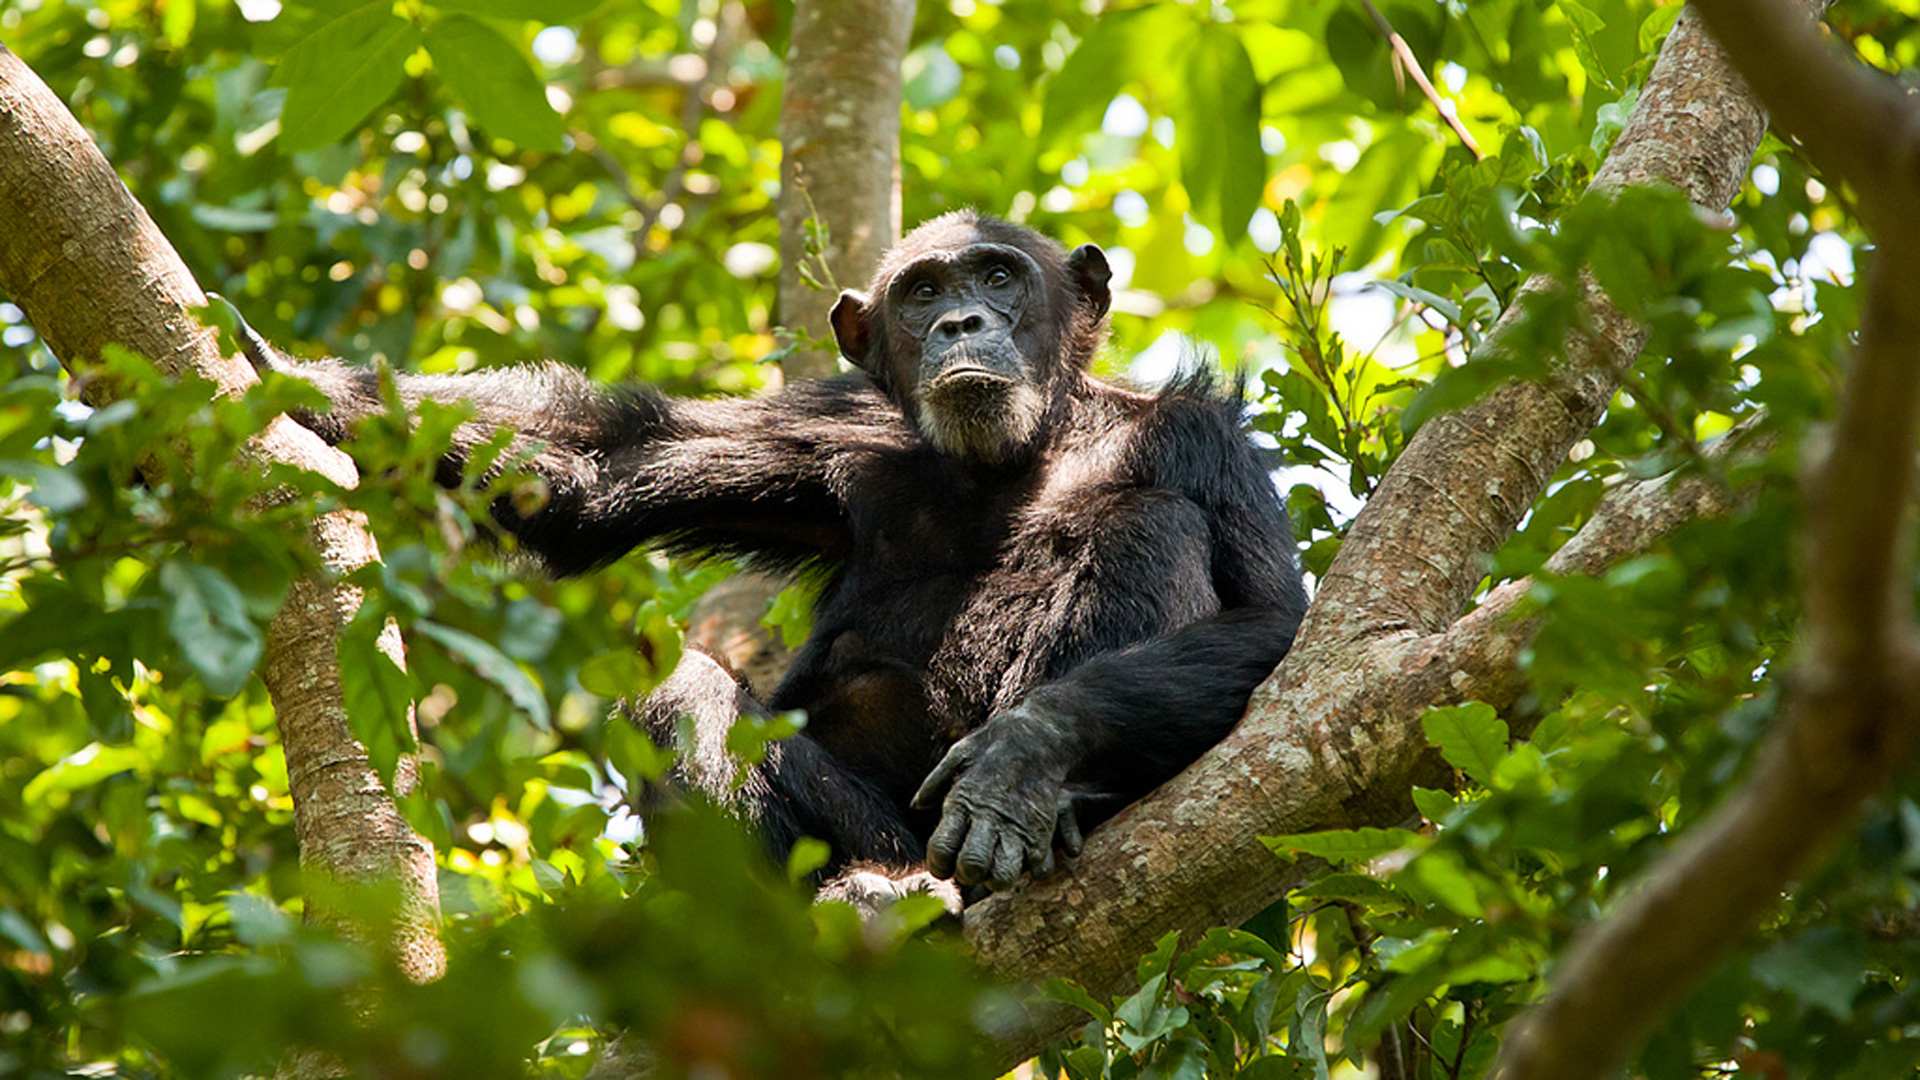 Chimpanzee by Richard Denyer